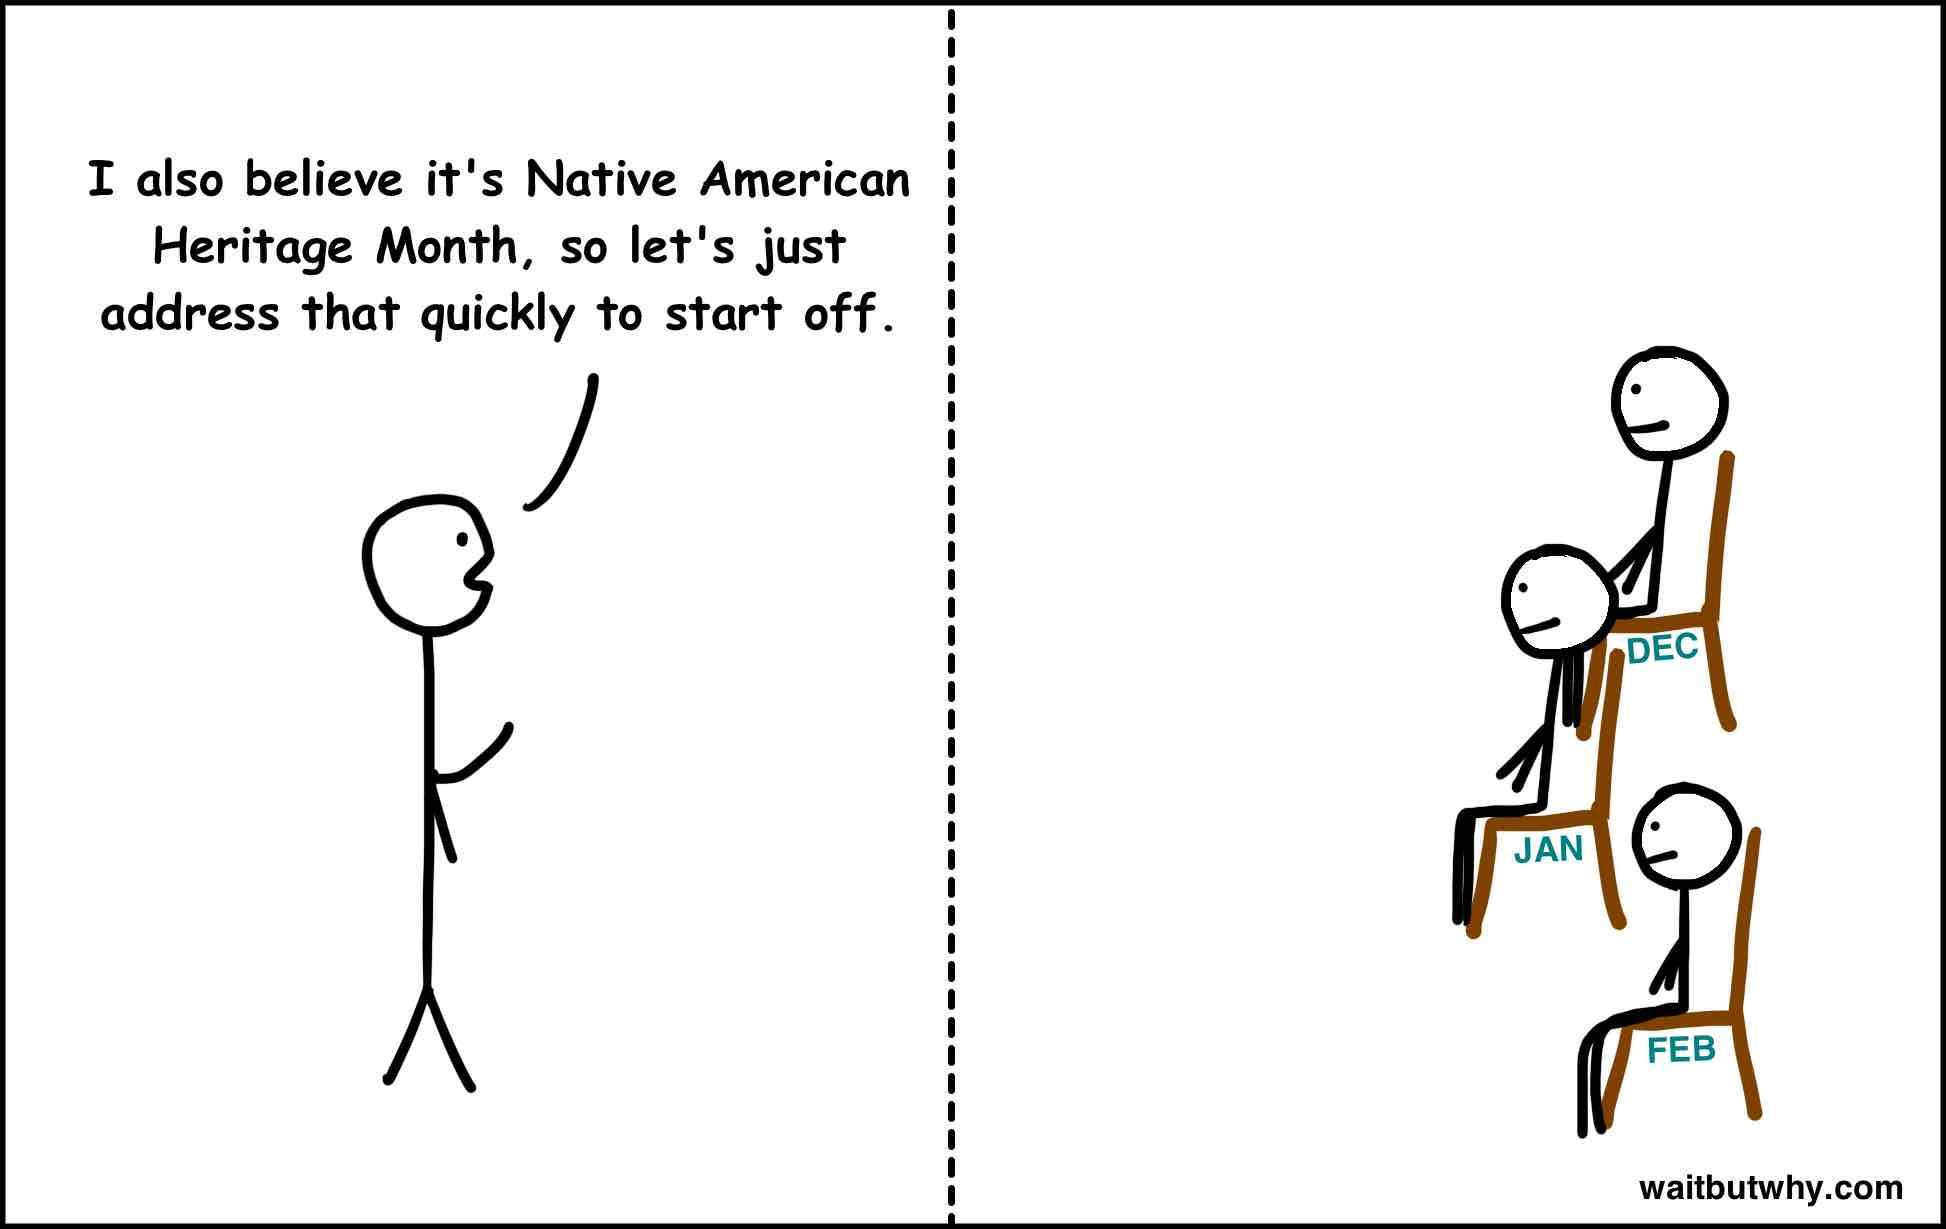 Nov: I also believe it's Native American Heritage Month, so let's just address that quickly to start off.